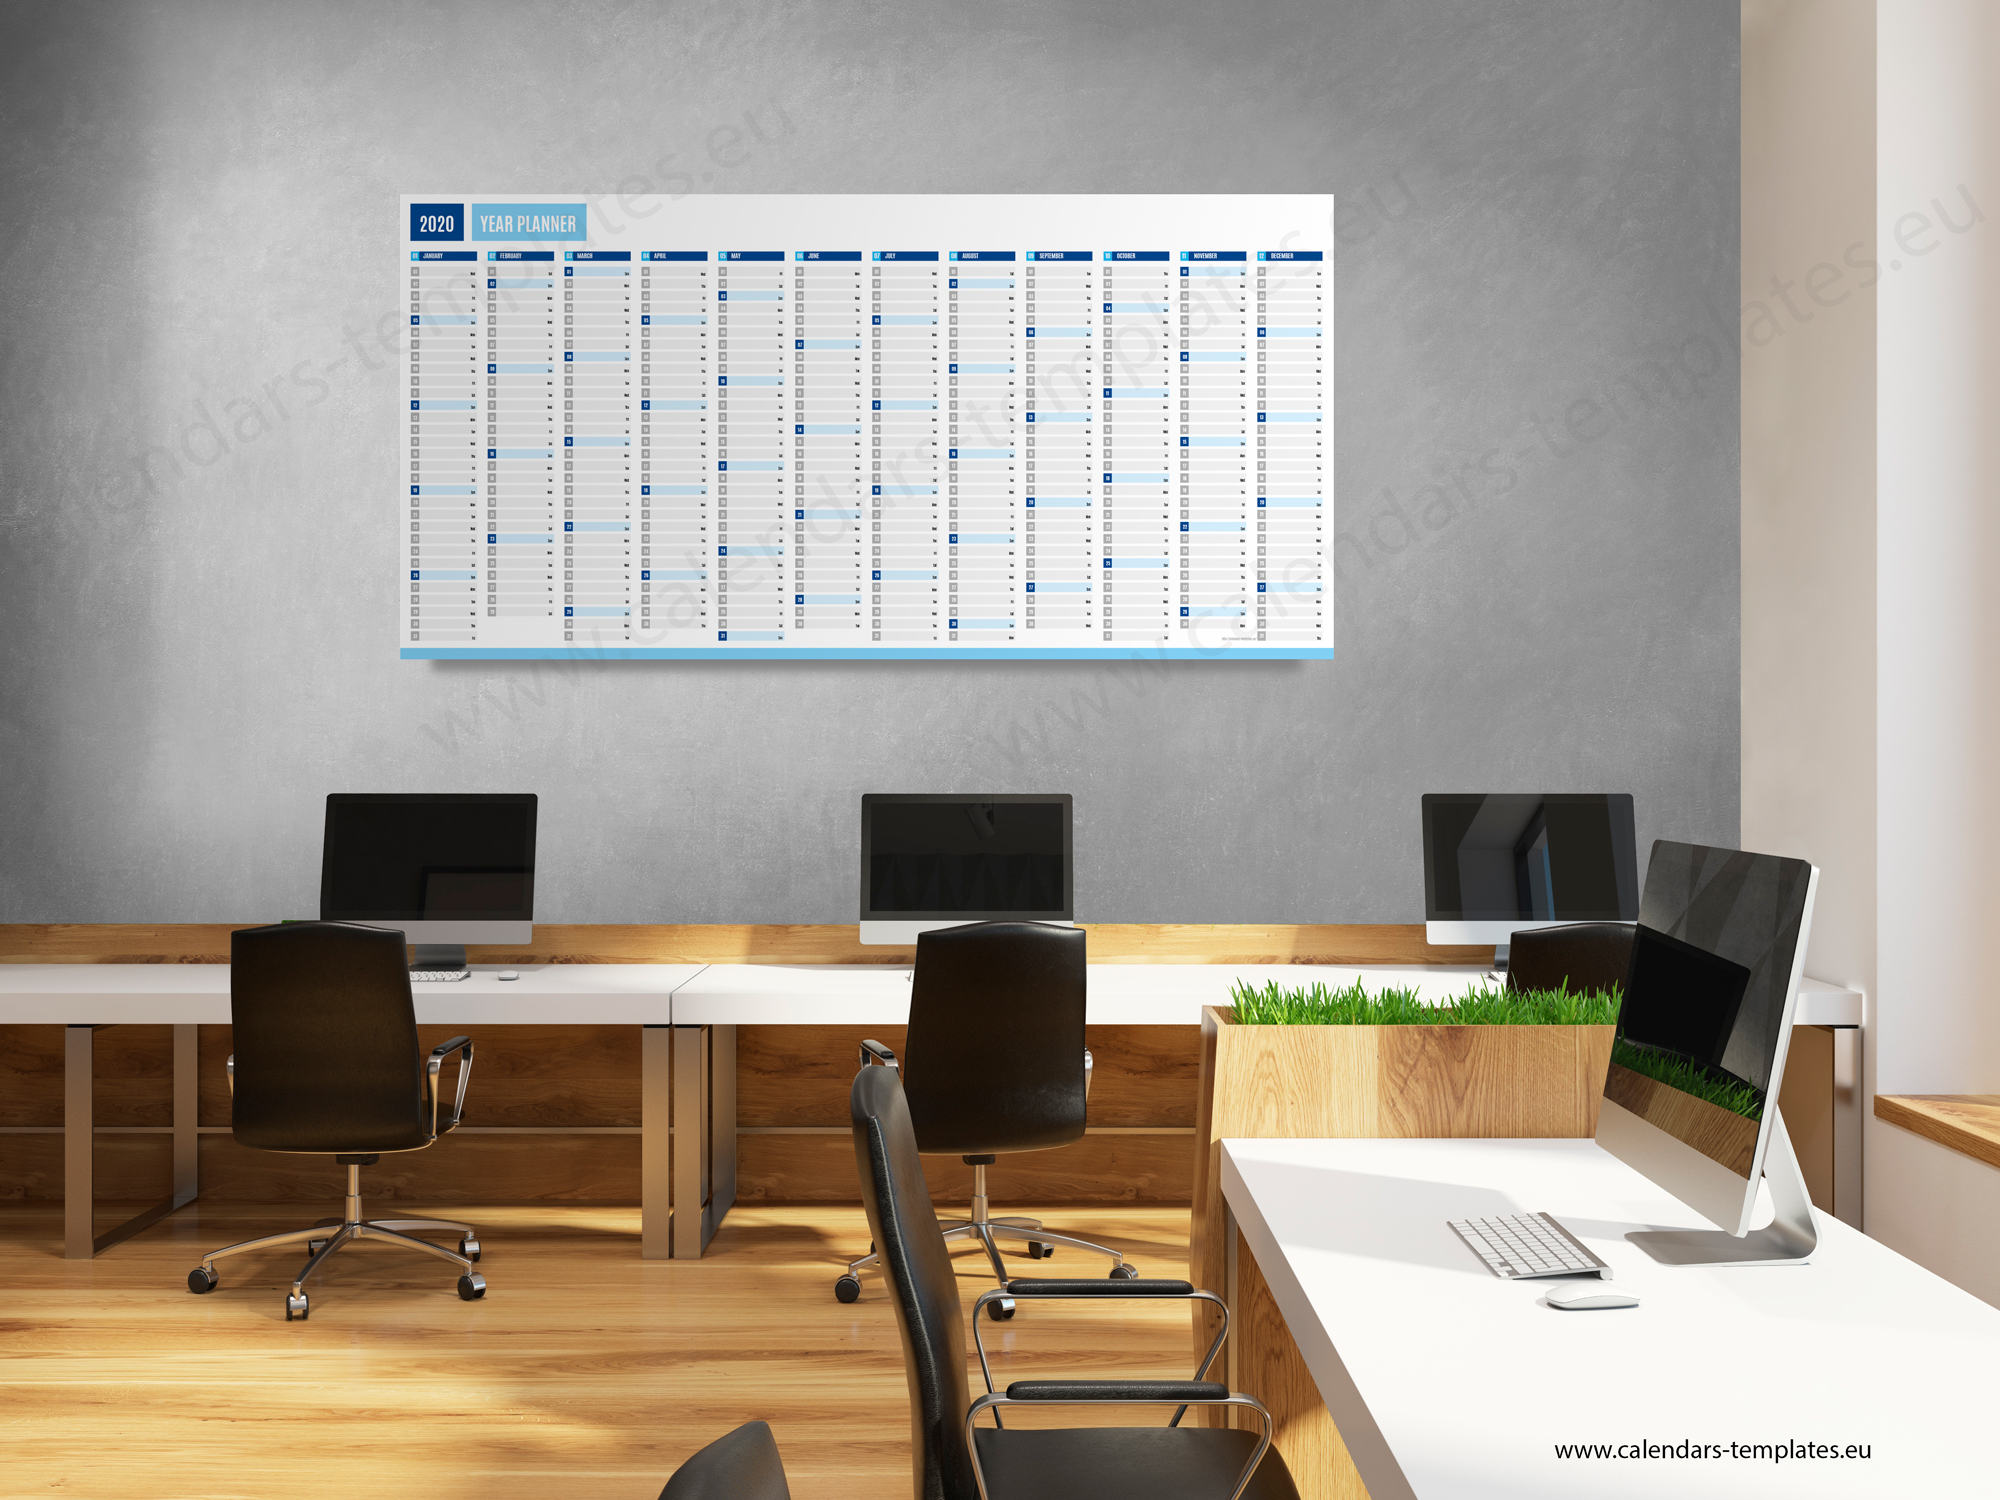 2020 Yearly wall planner KP-W4Long